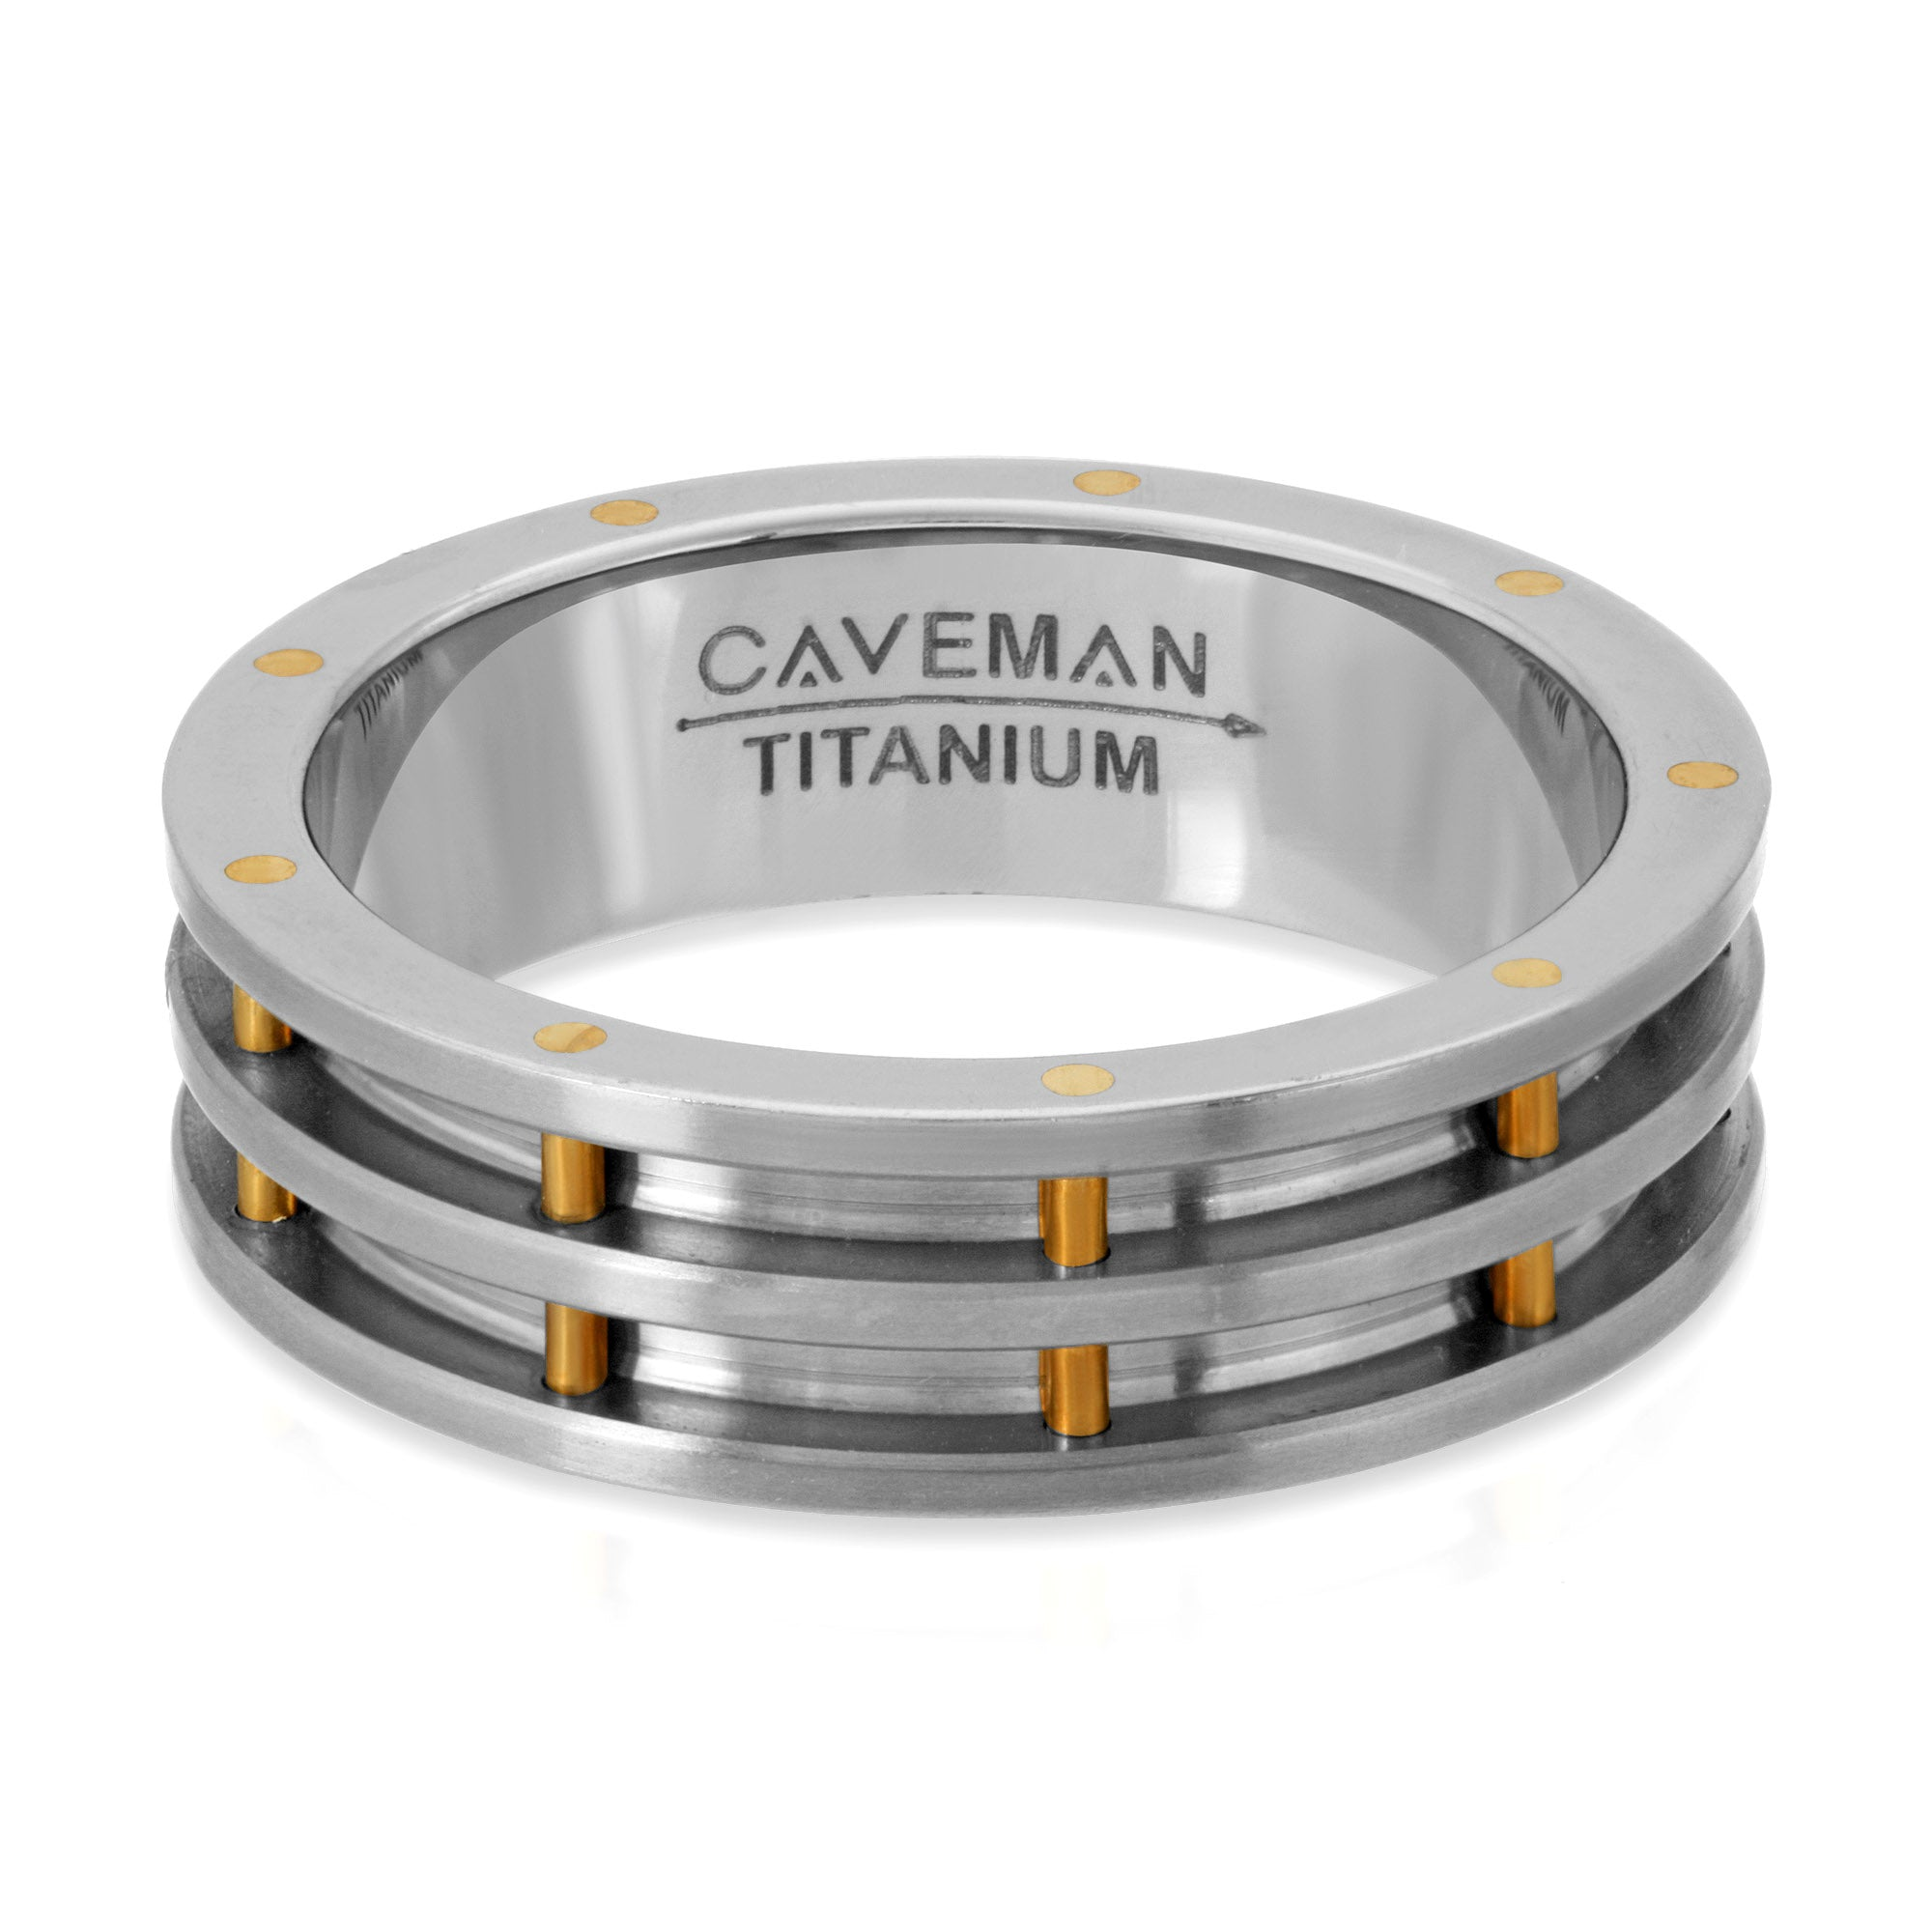 Aerospace Titanium and Brass Wedding Band